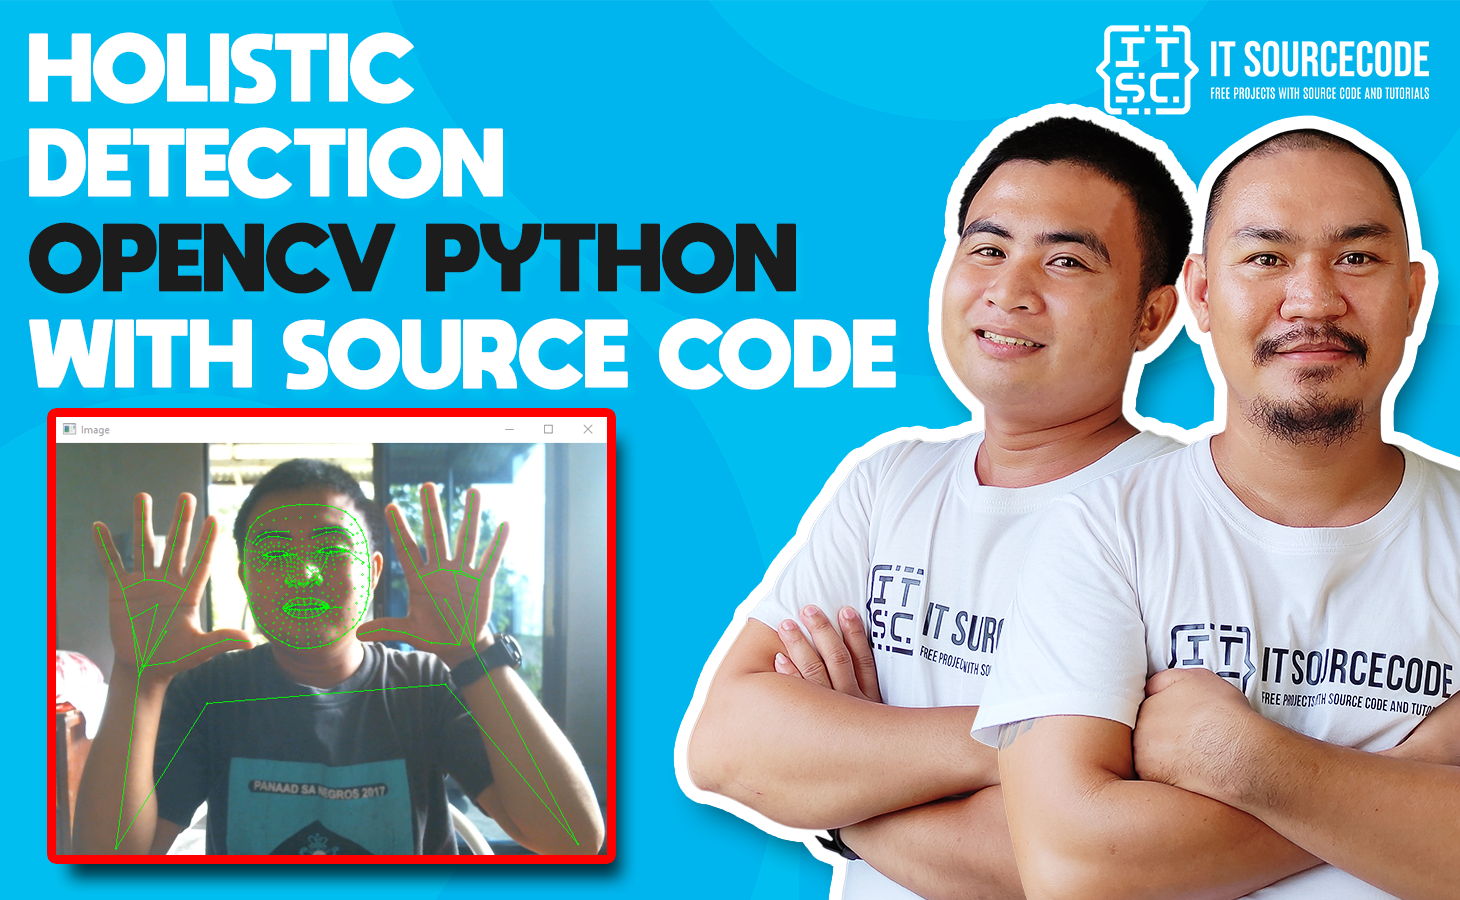 Holistic Detection OpenCV Python With Source Code